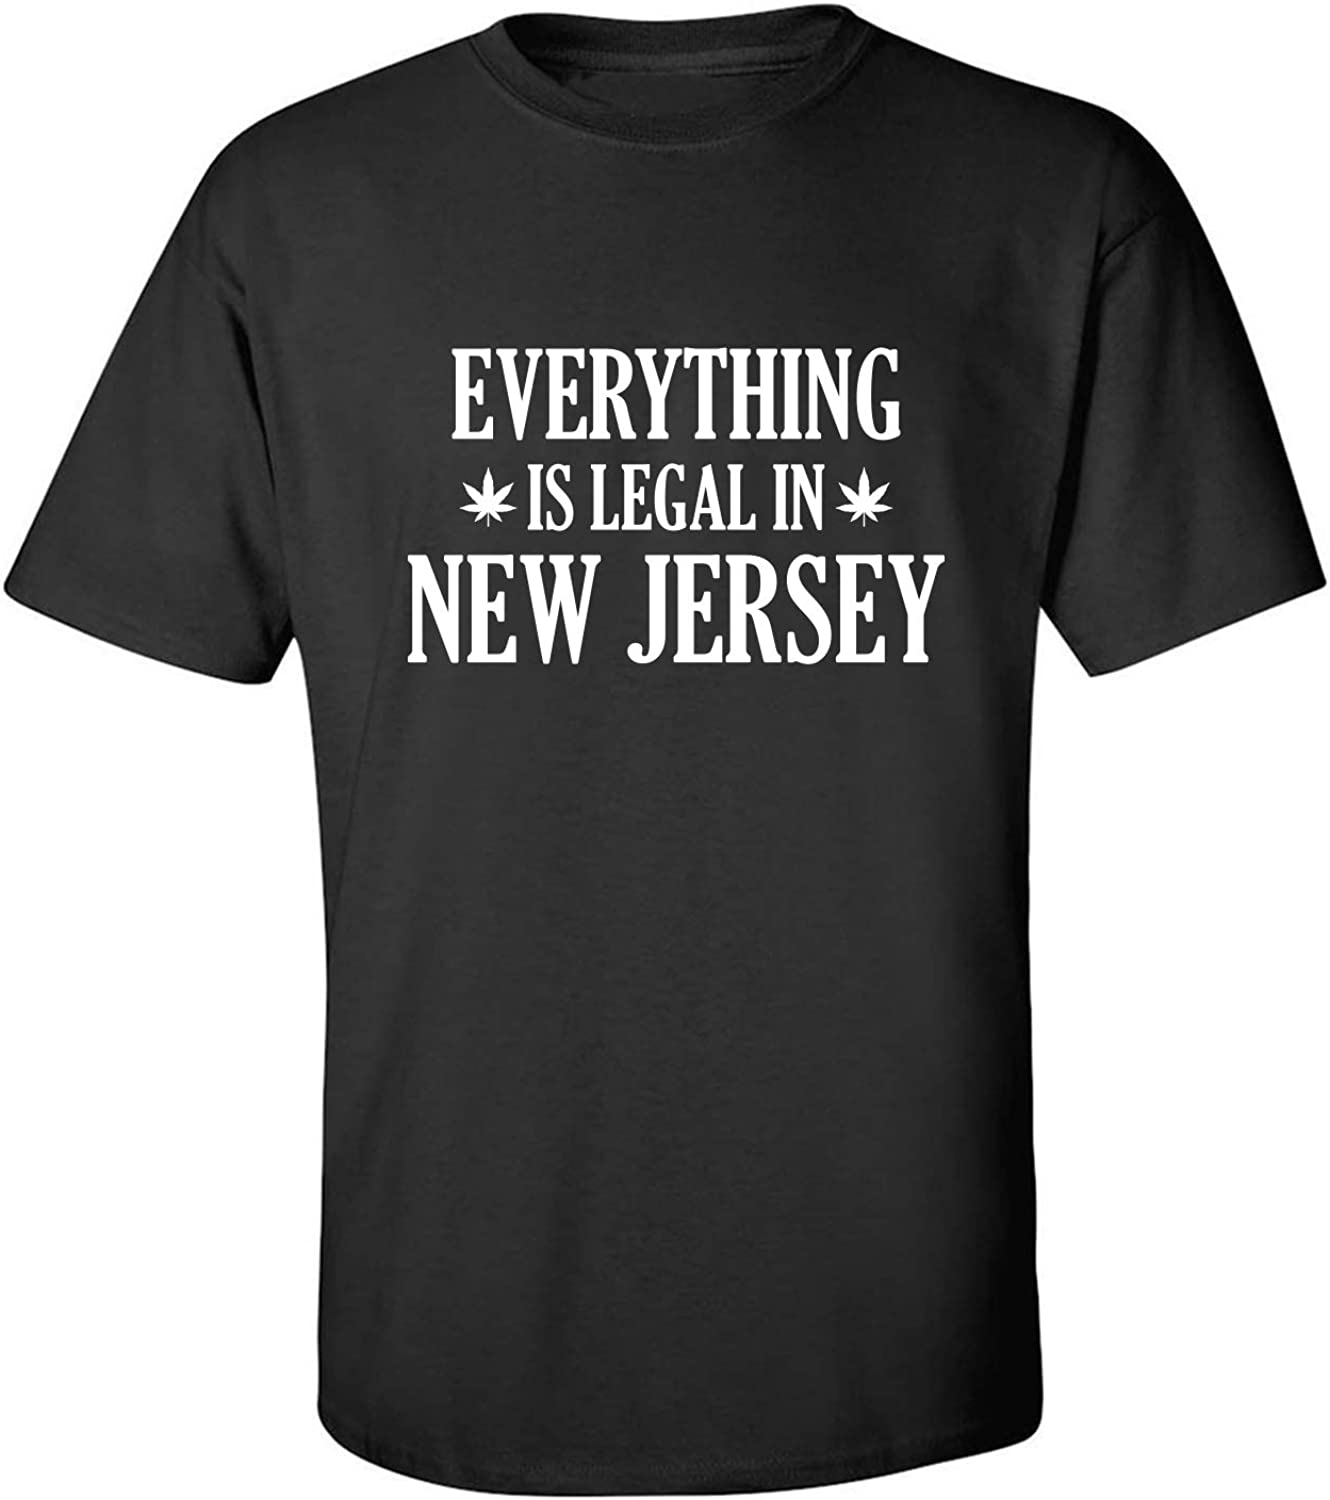 Everything is Legal in New Jersey Adult T-Shirt in Black - XXXX-Large